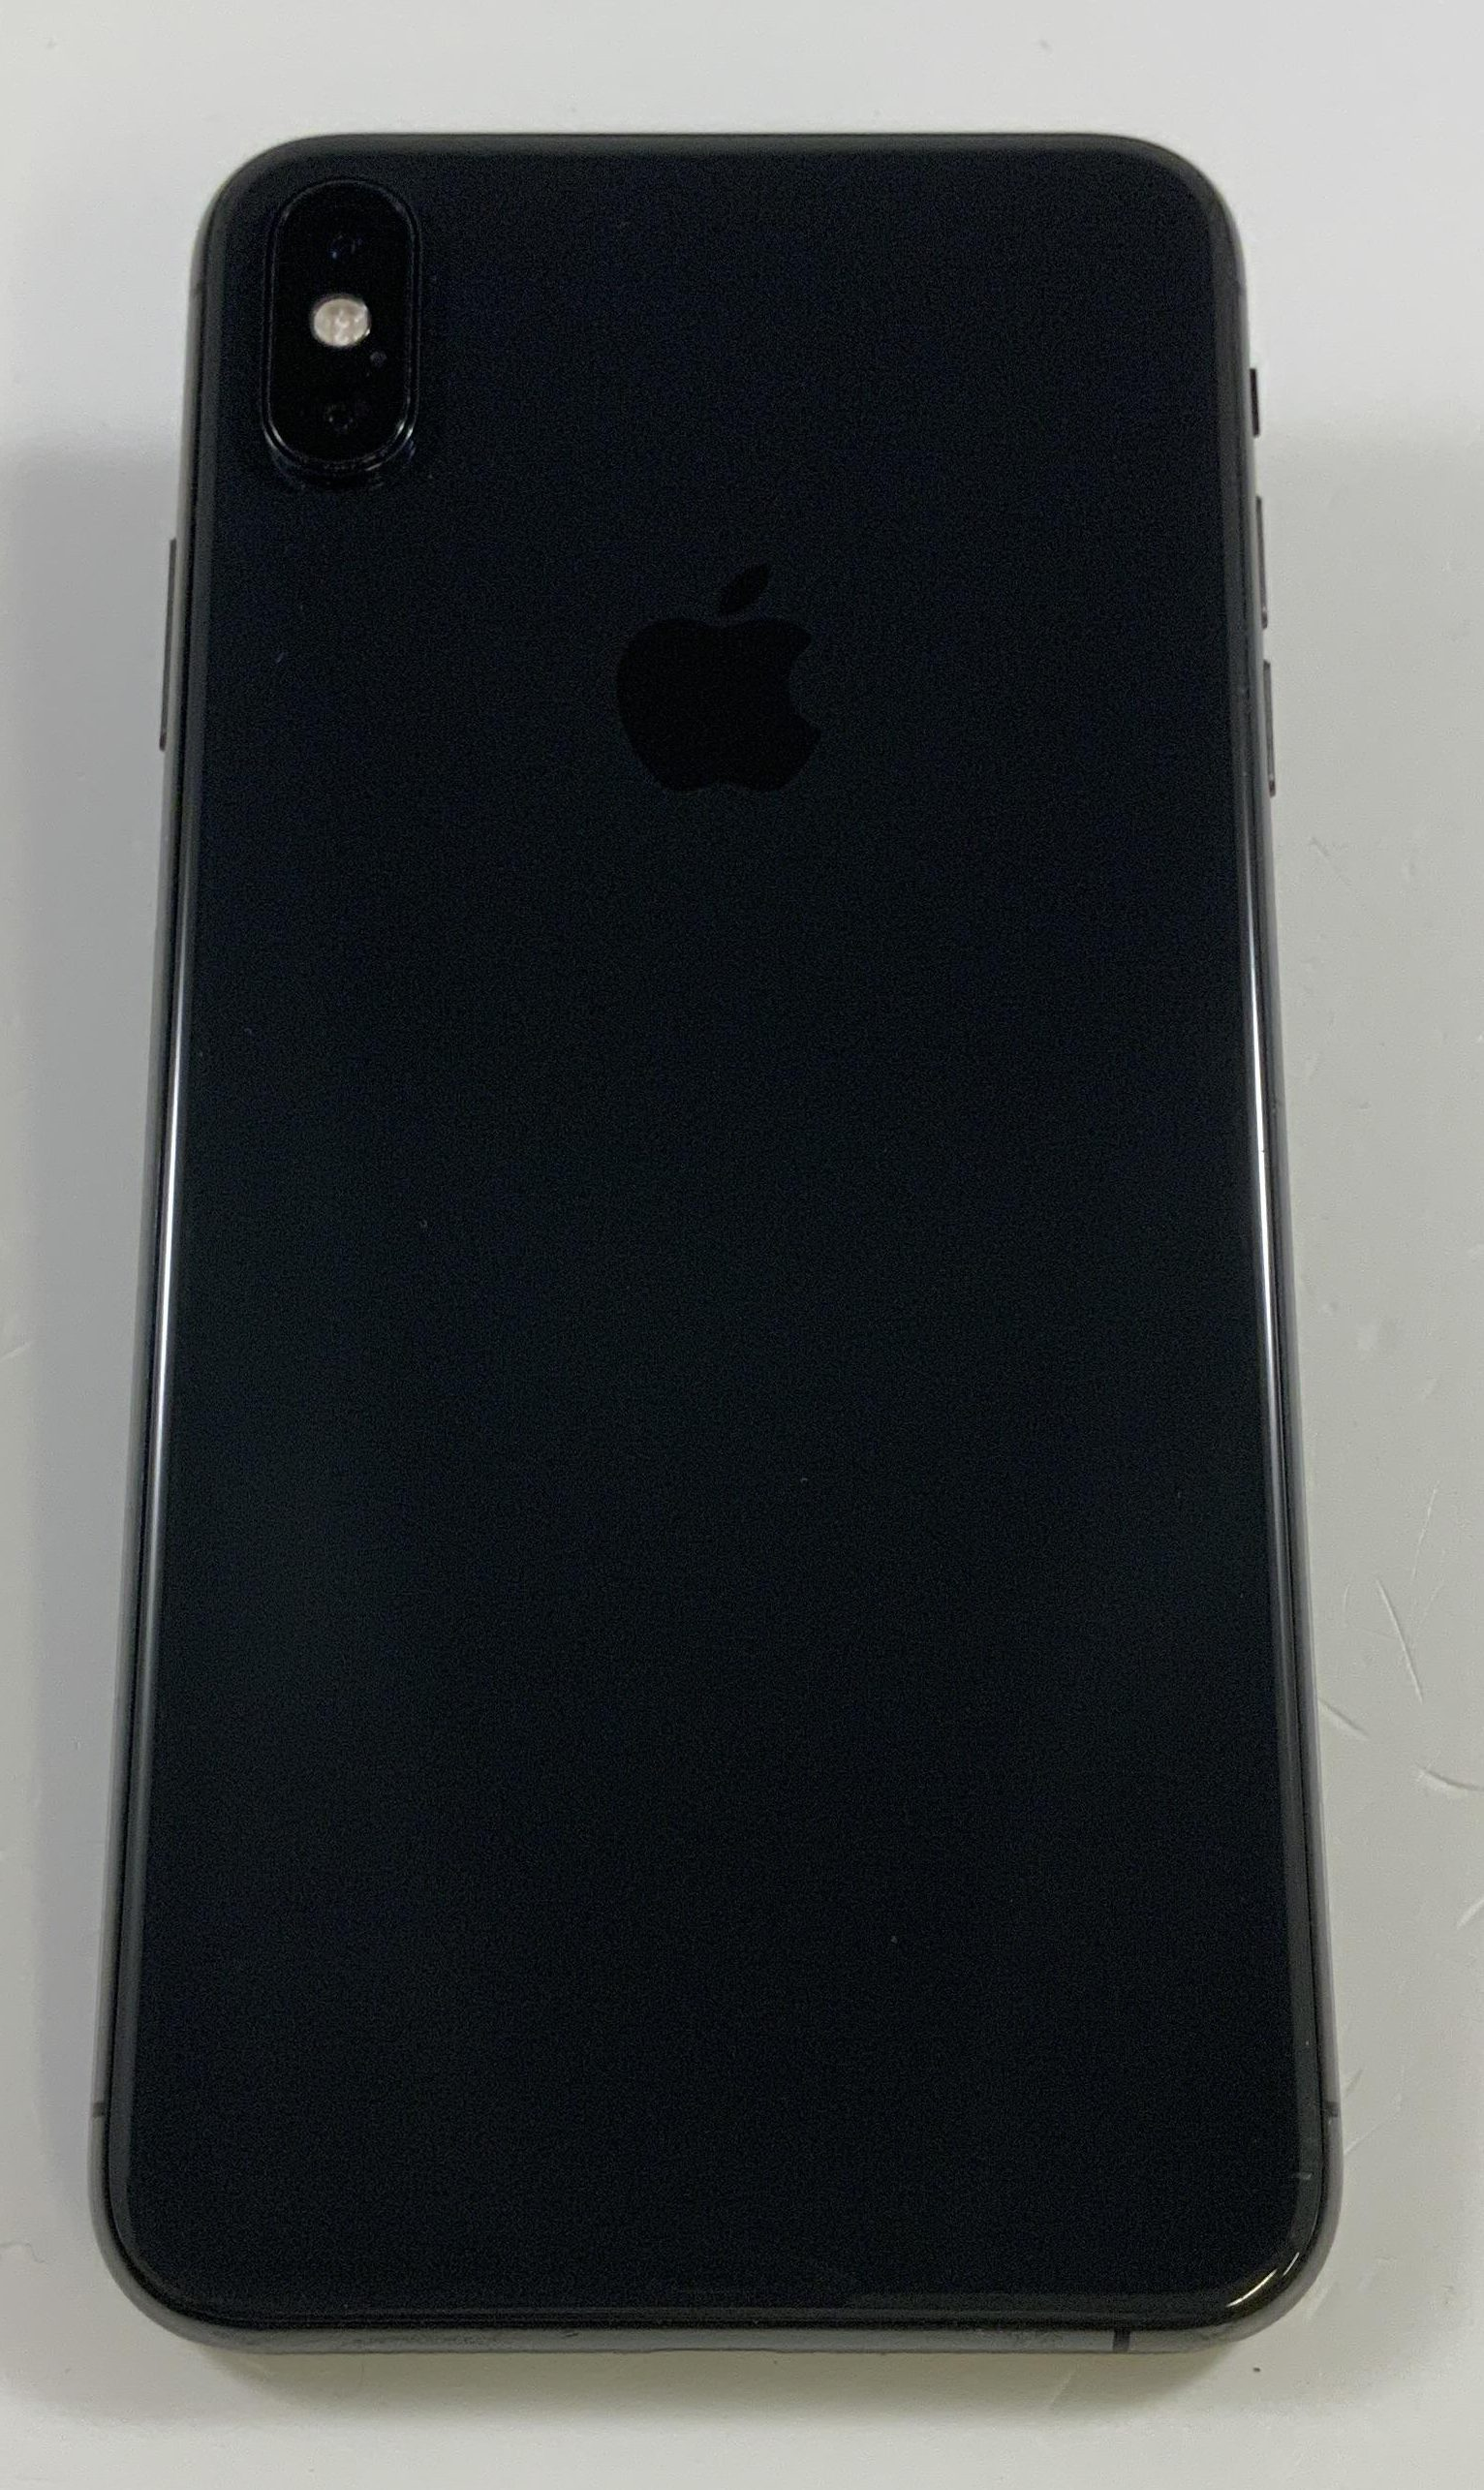 iPhone XS Max 256GB, 256GB, Space Gray, image 2